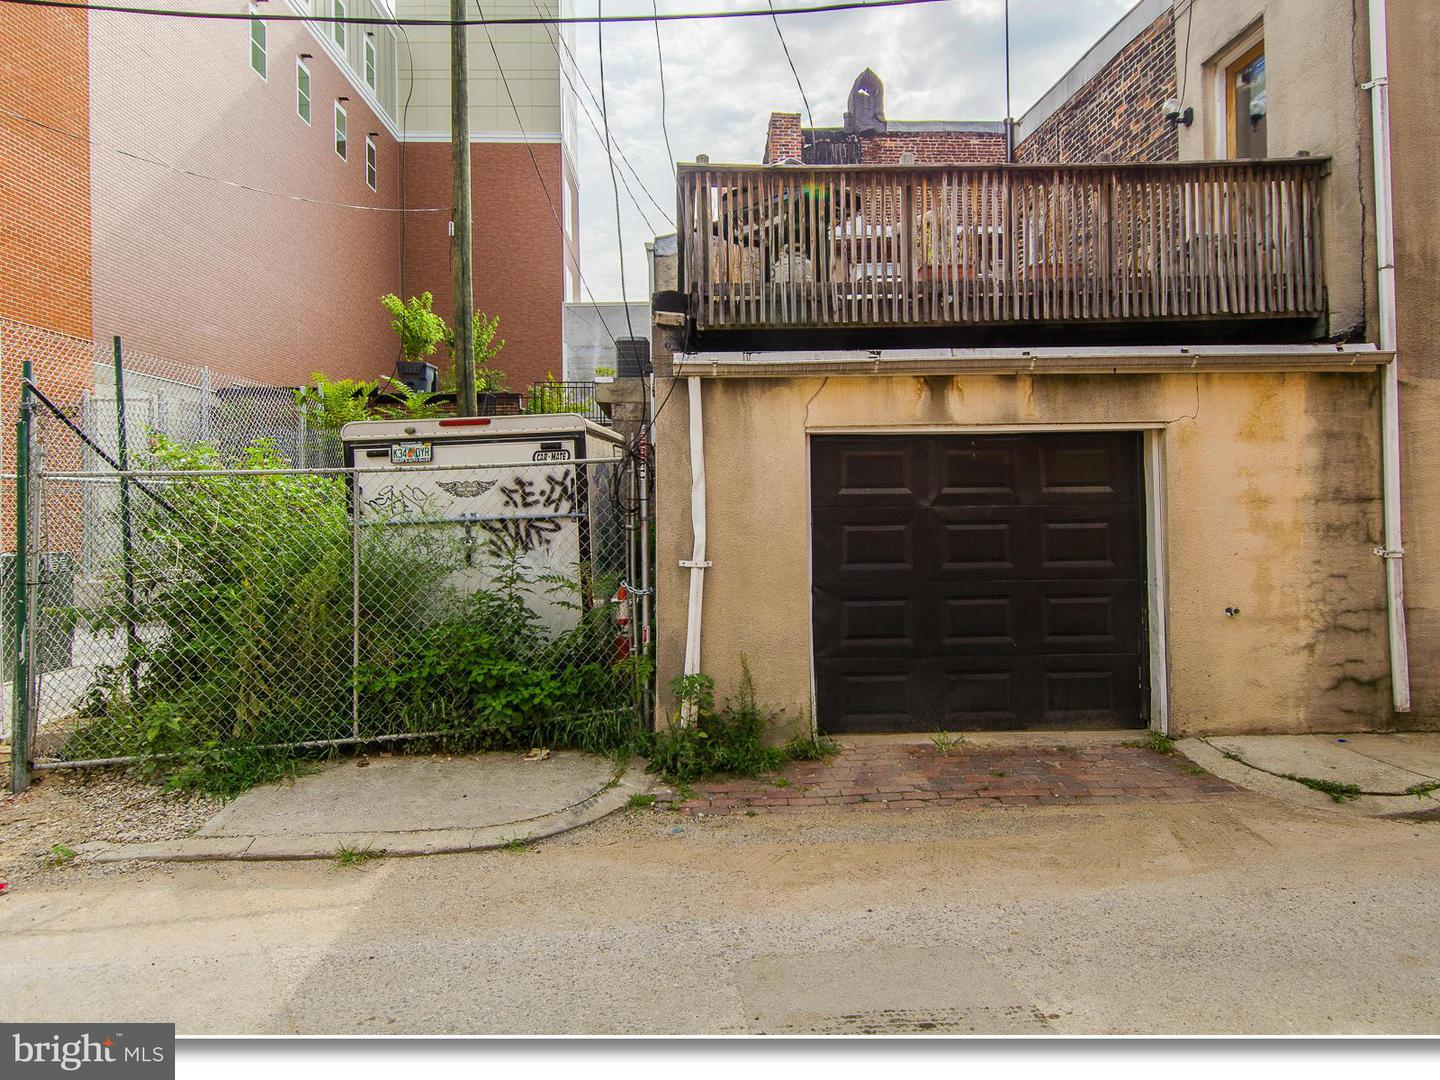 Land for Sale at 625 Bethel St S Baltimore, Maryland 21231 United States